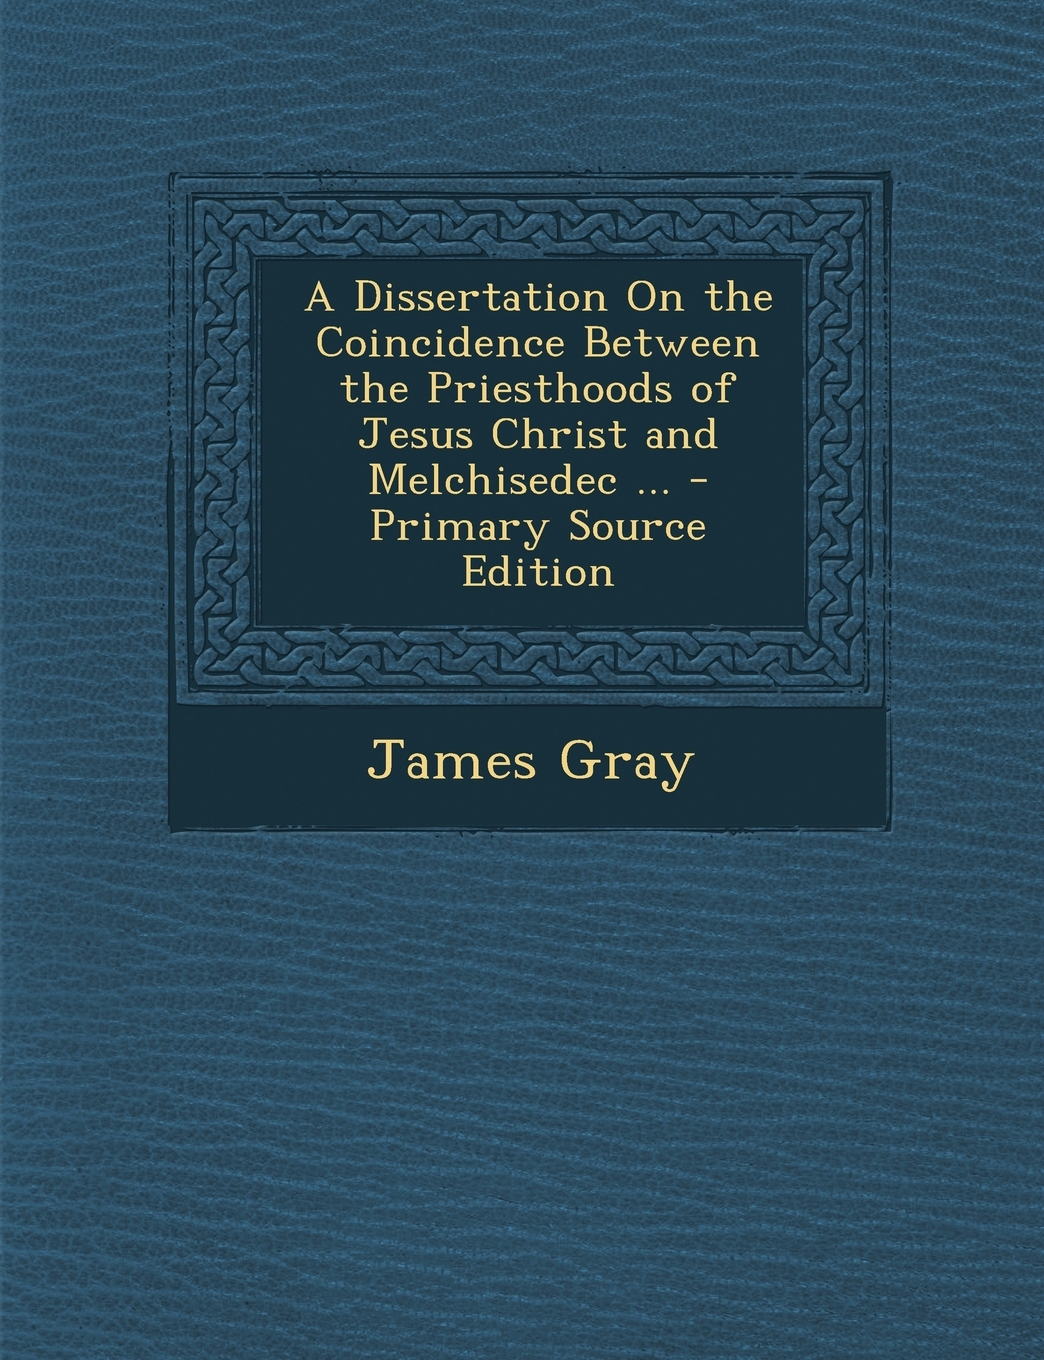 A dissertation on the coincidence between the priesthoods of jesus christ and melchisedec